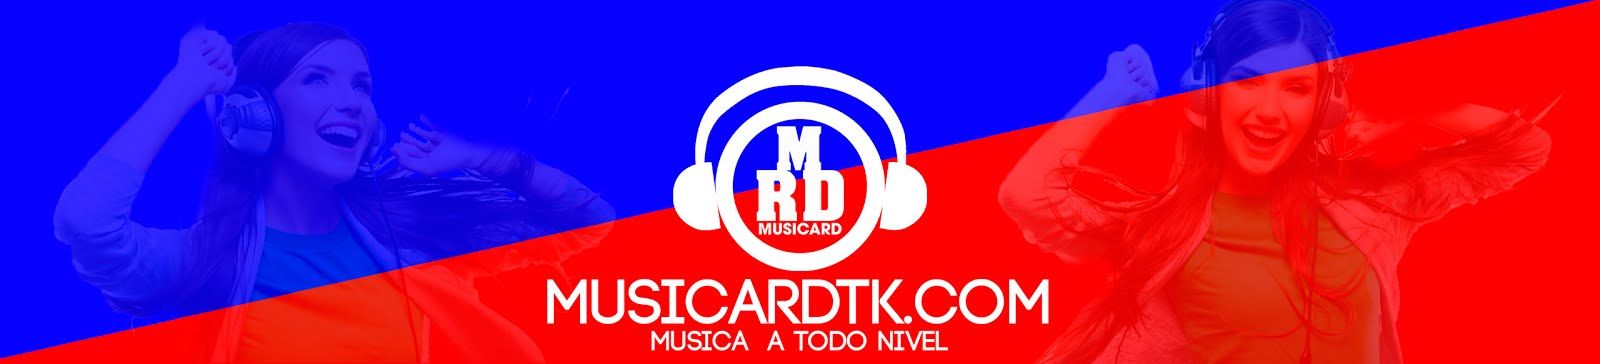 MusicaRD-Descarga Musica, Album y Mp3s Gratis